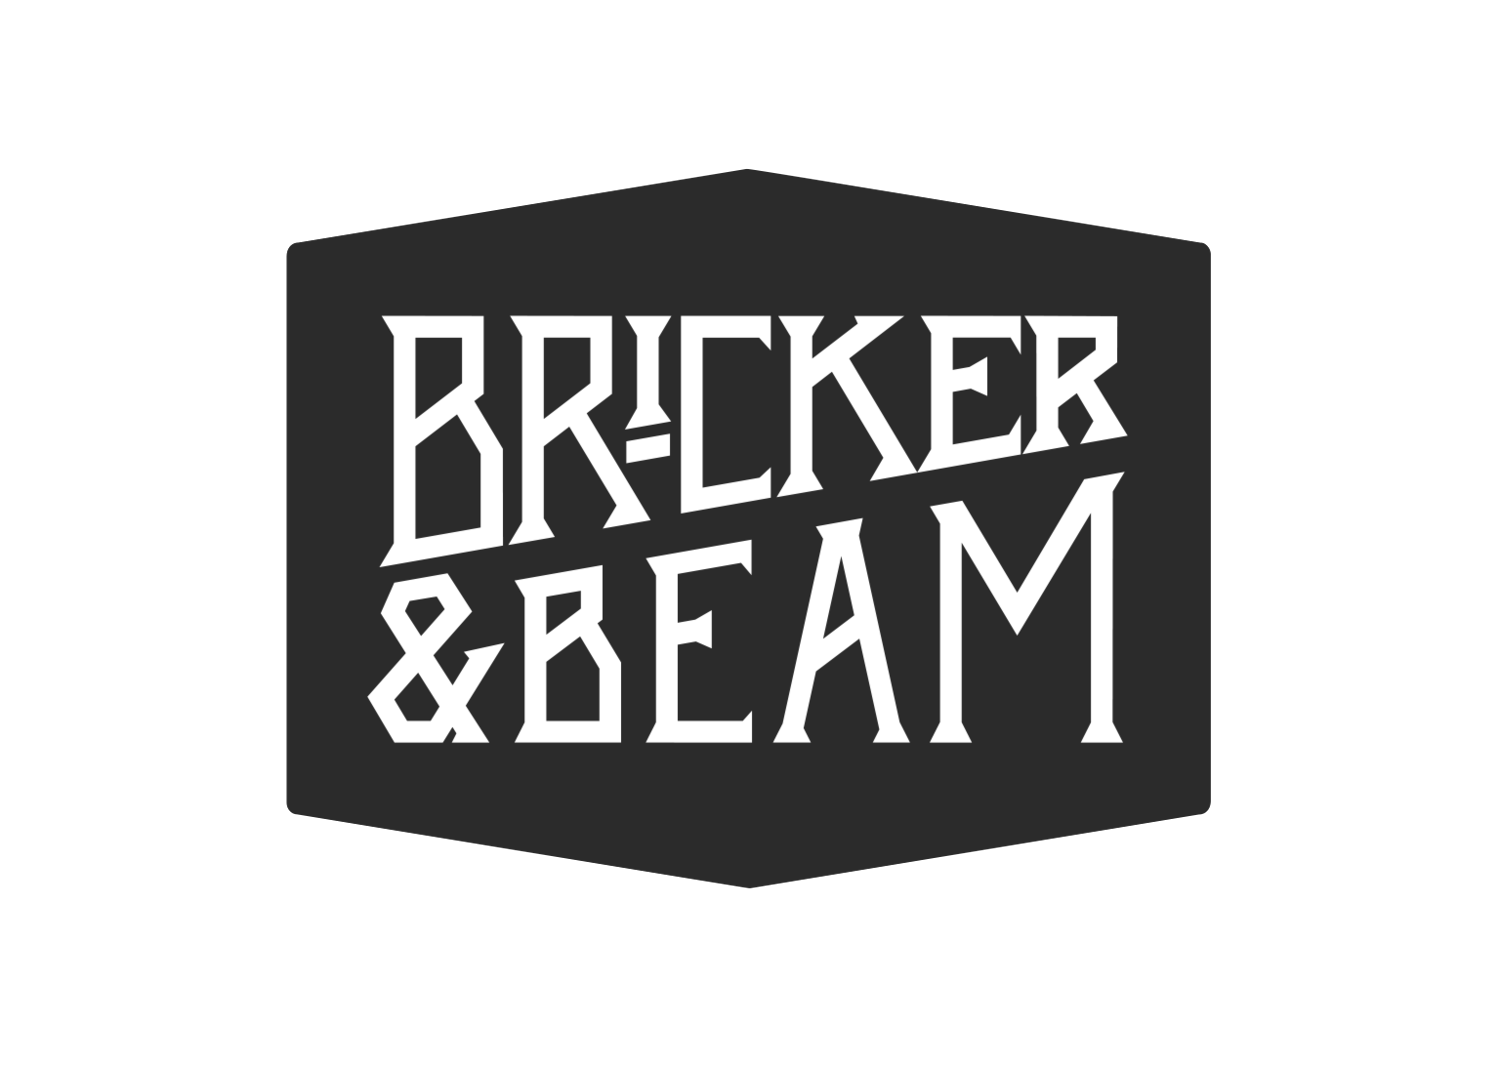 Bricker & Beam